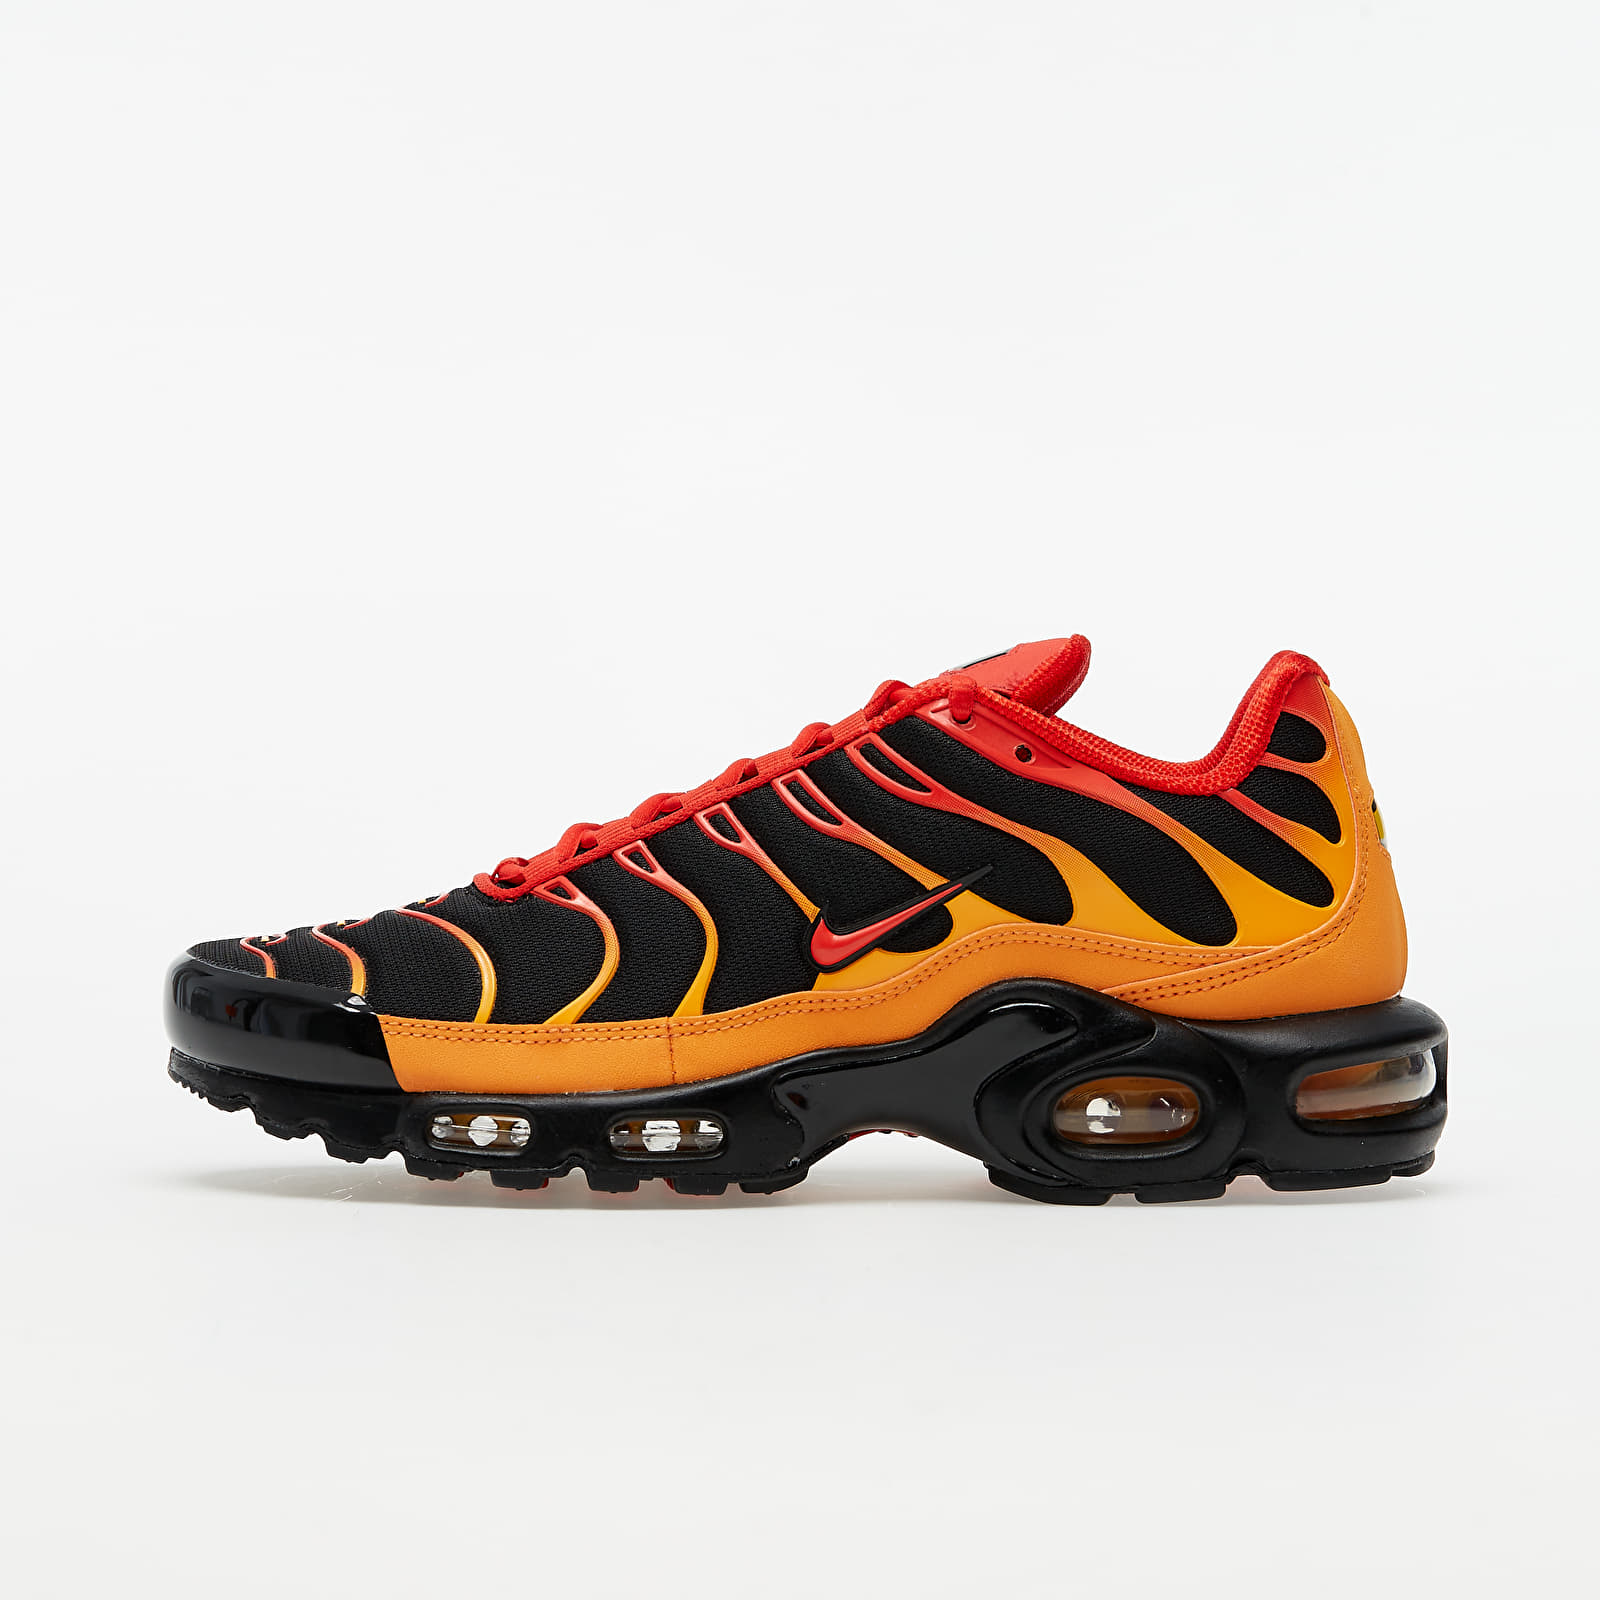 Nike Air Max Plus Black/ Chile Red-Vivid Orange EUR 42